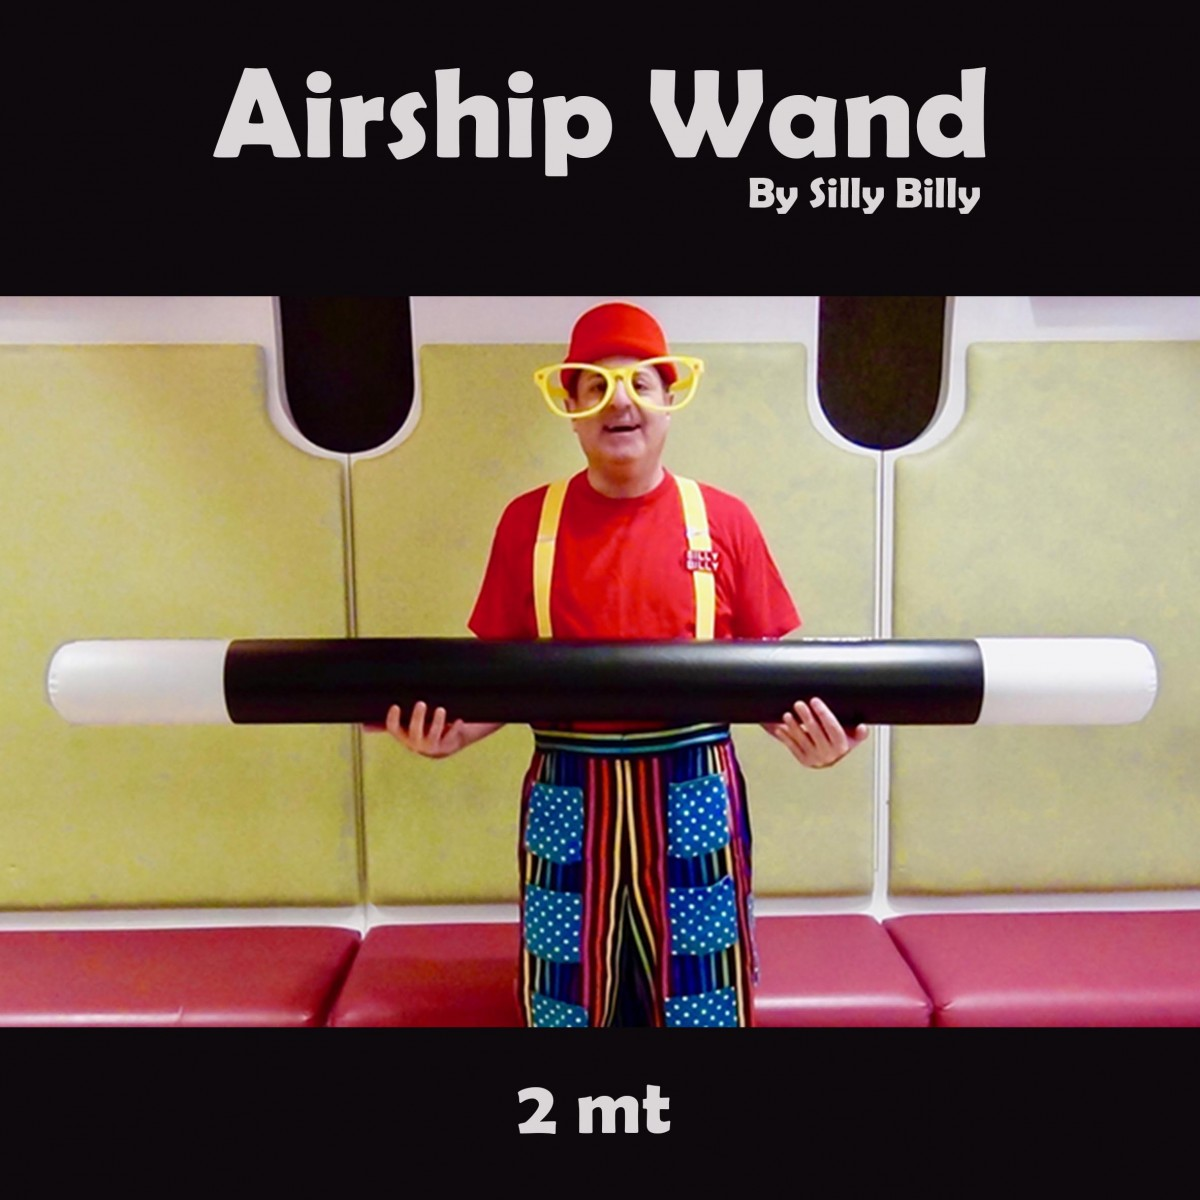 Airship Wand by Silly Billy (2 Mt)